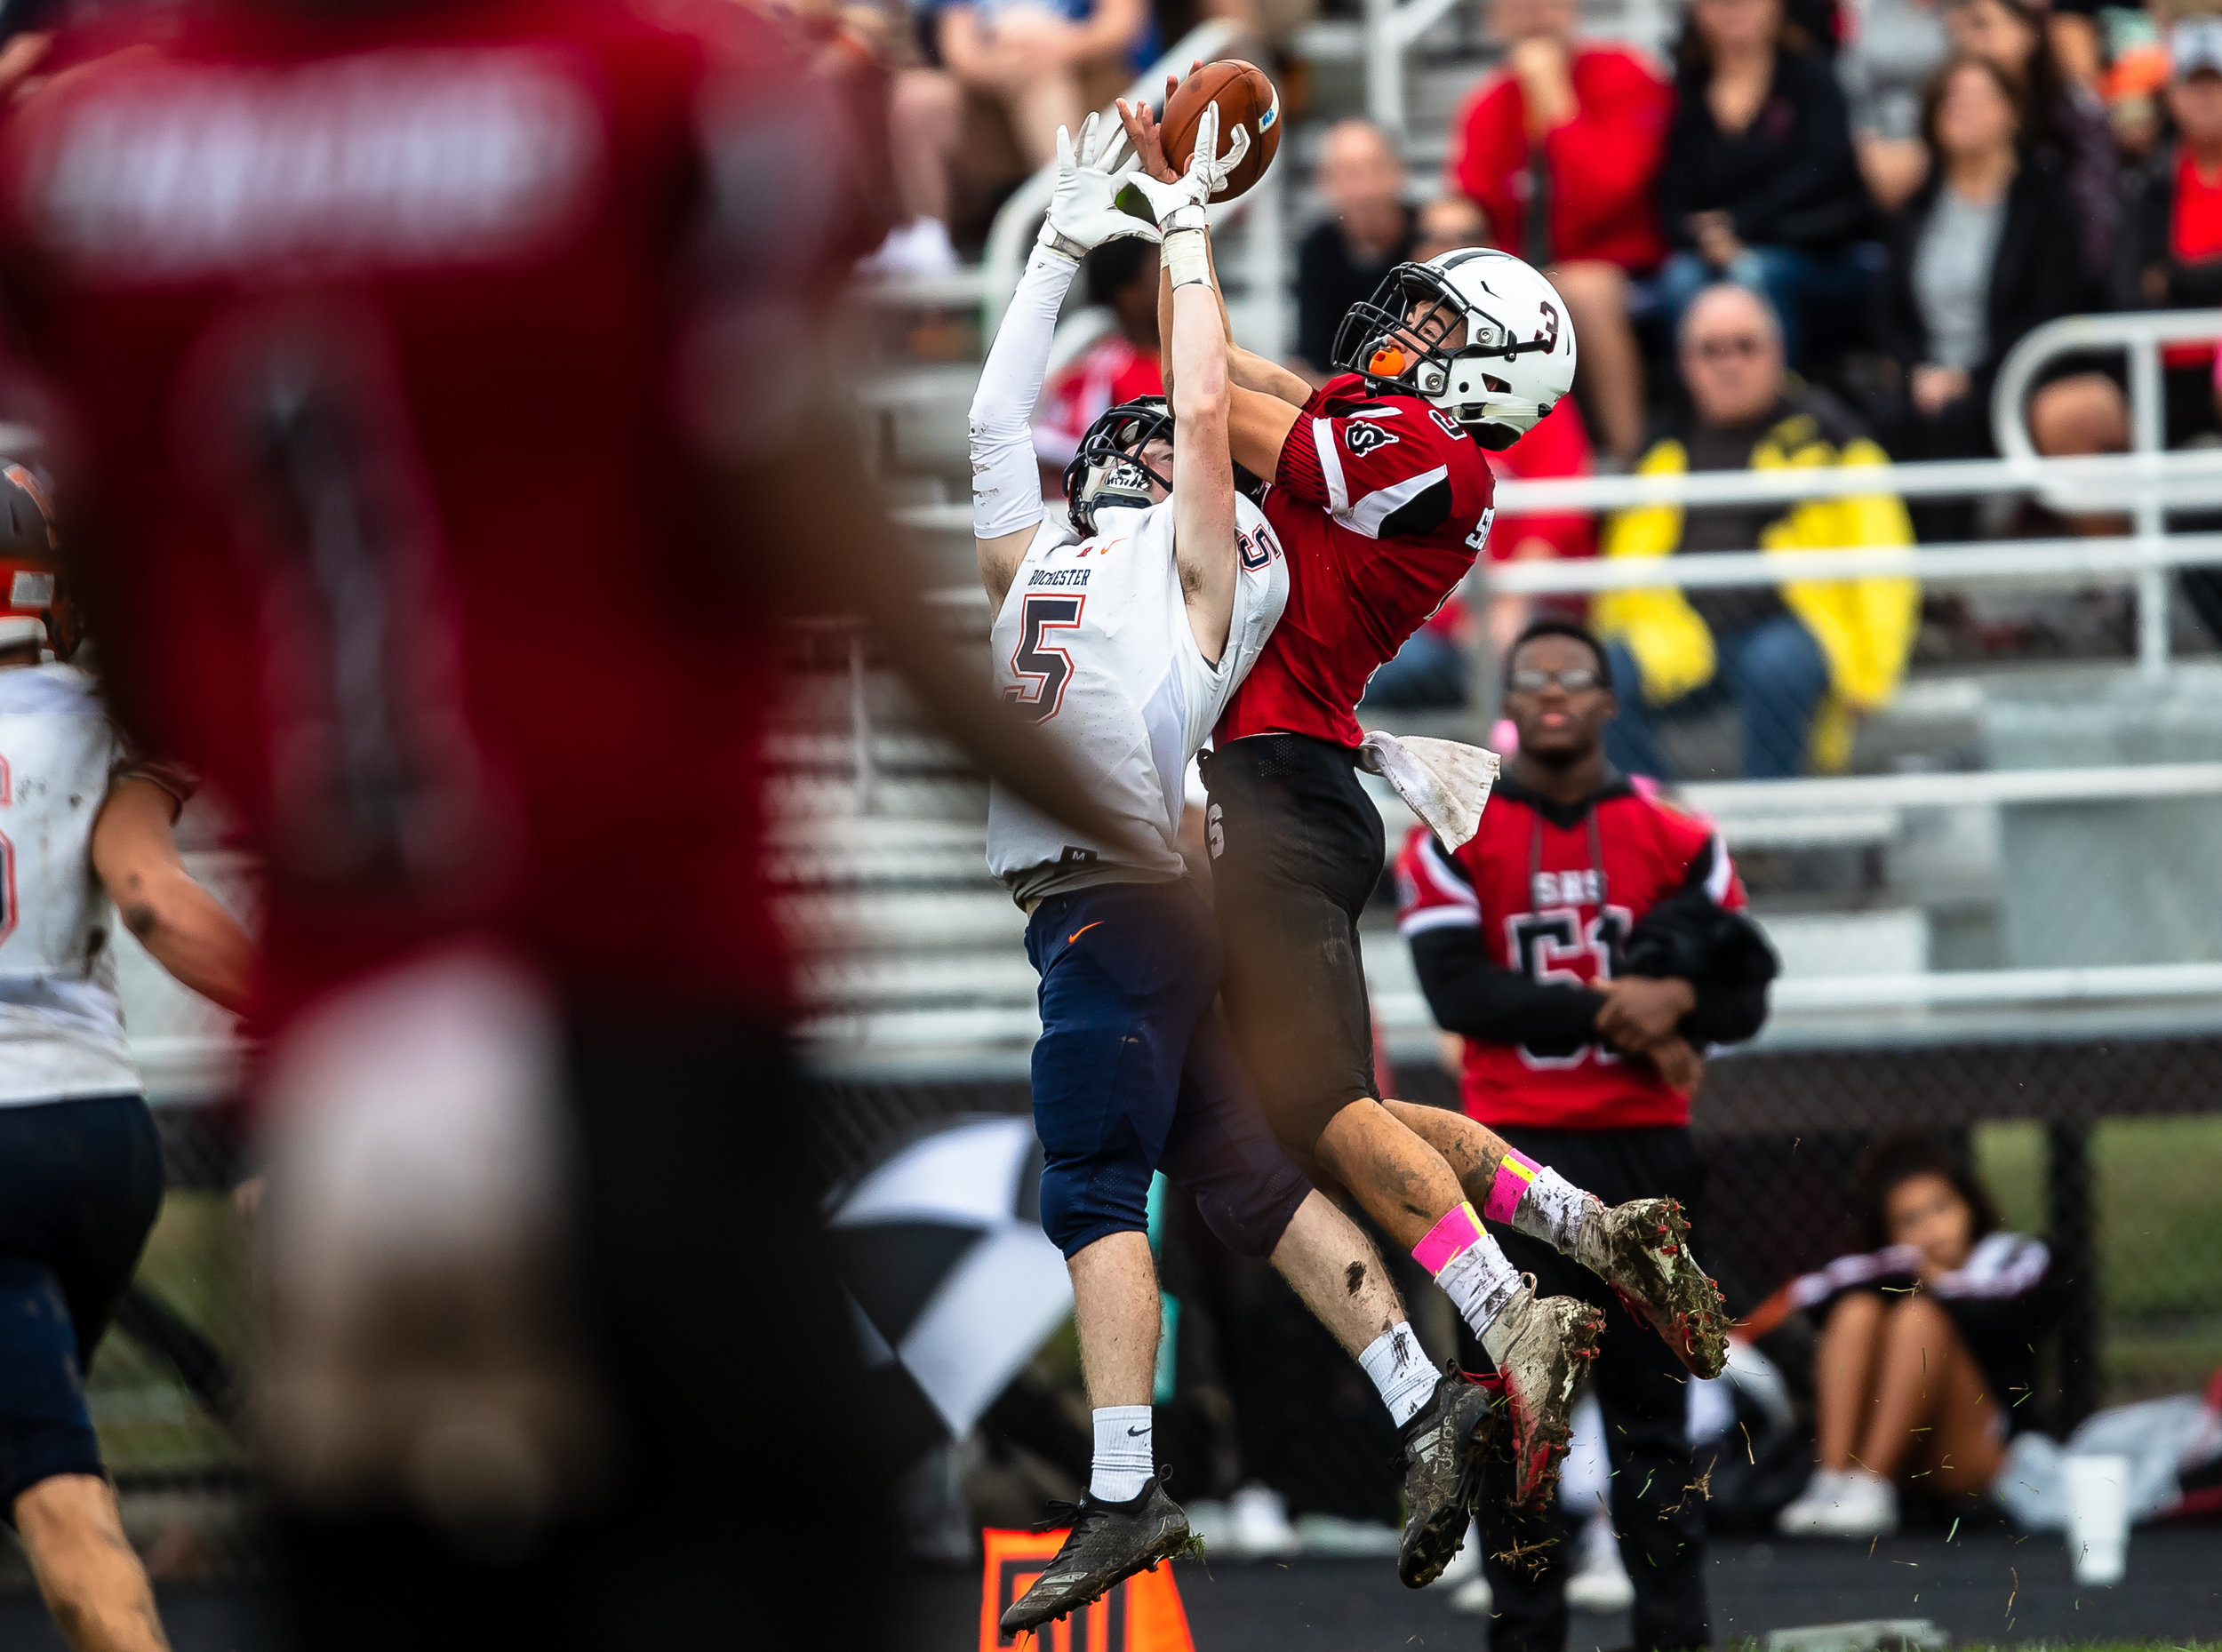 Springfield's Steven Boucher (3) hauls in a catch over Rochester's Chase Hickey (5) in the first half at Memorial Stadium, Saturday, Oct. 6, 2018, in Springfield, Ill. [Justin L. Fowler/The State Journal-Register]